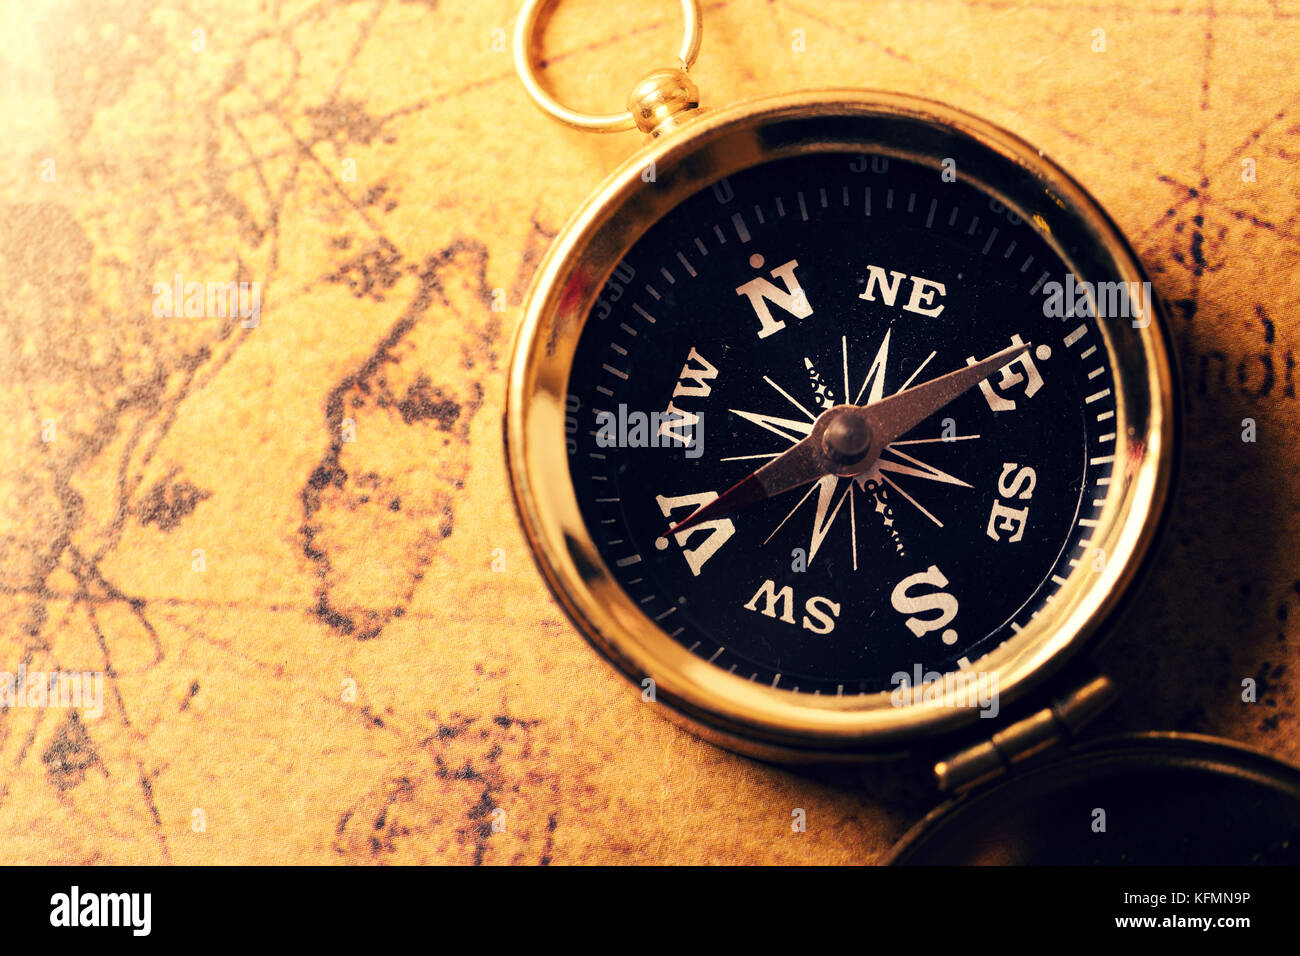 golden compass on old treasure map - Stock Image